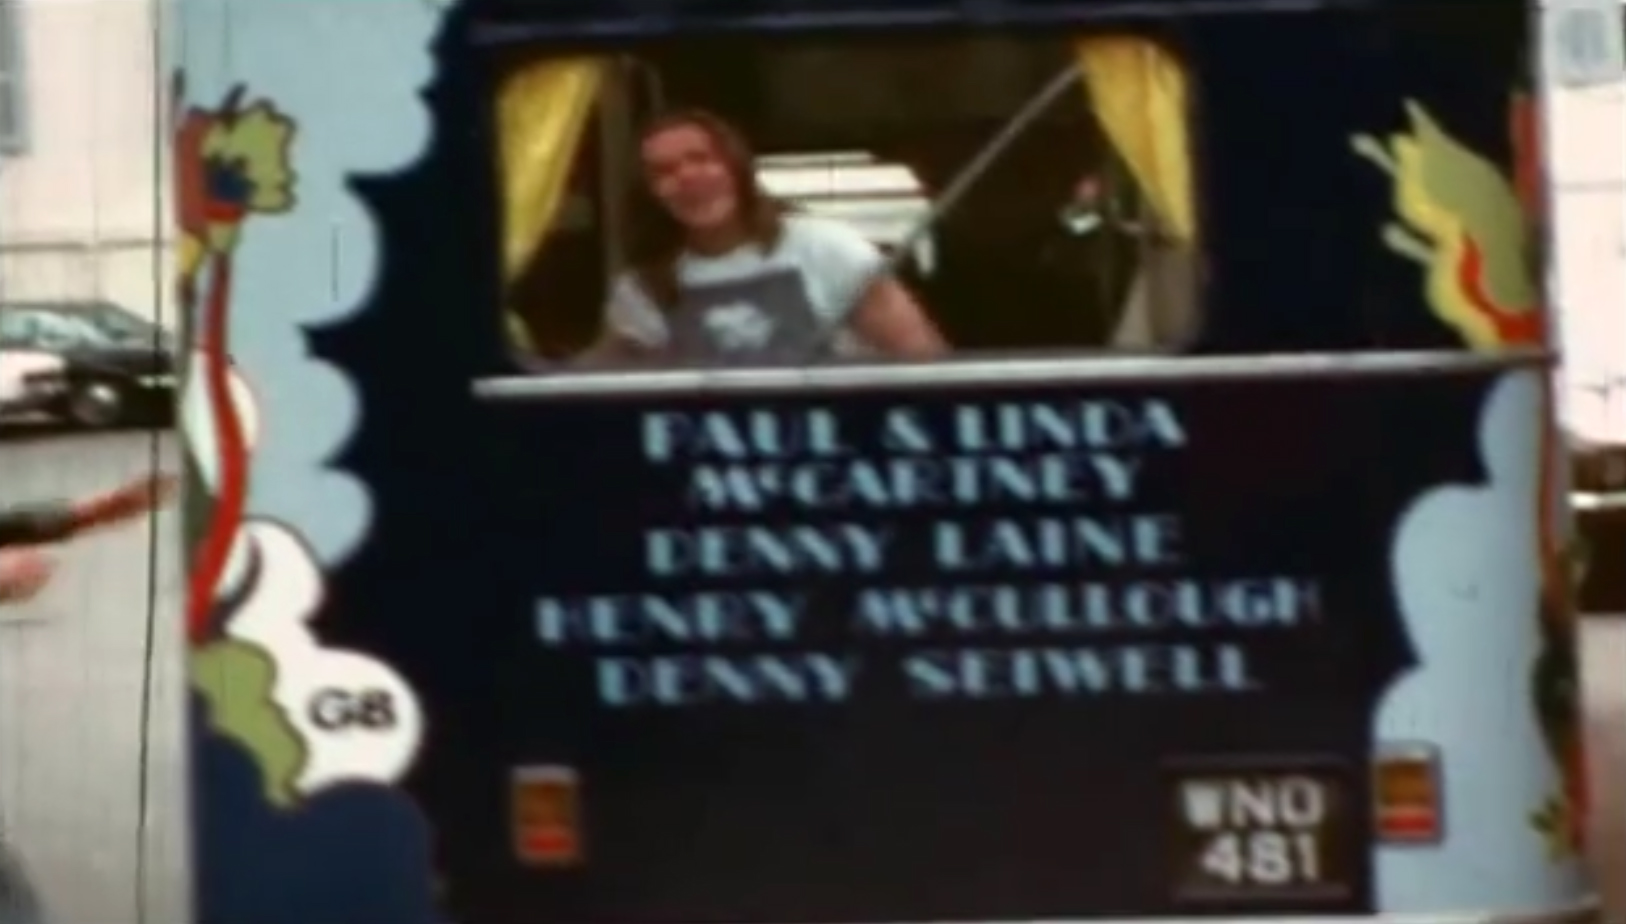 wno-481-1972-wings-tour-bus-henry-mccullough-2